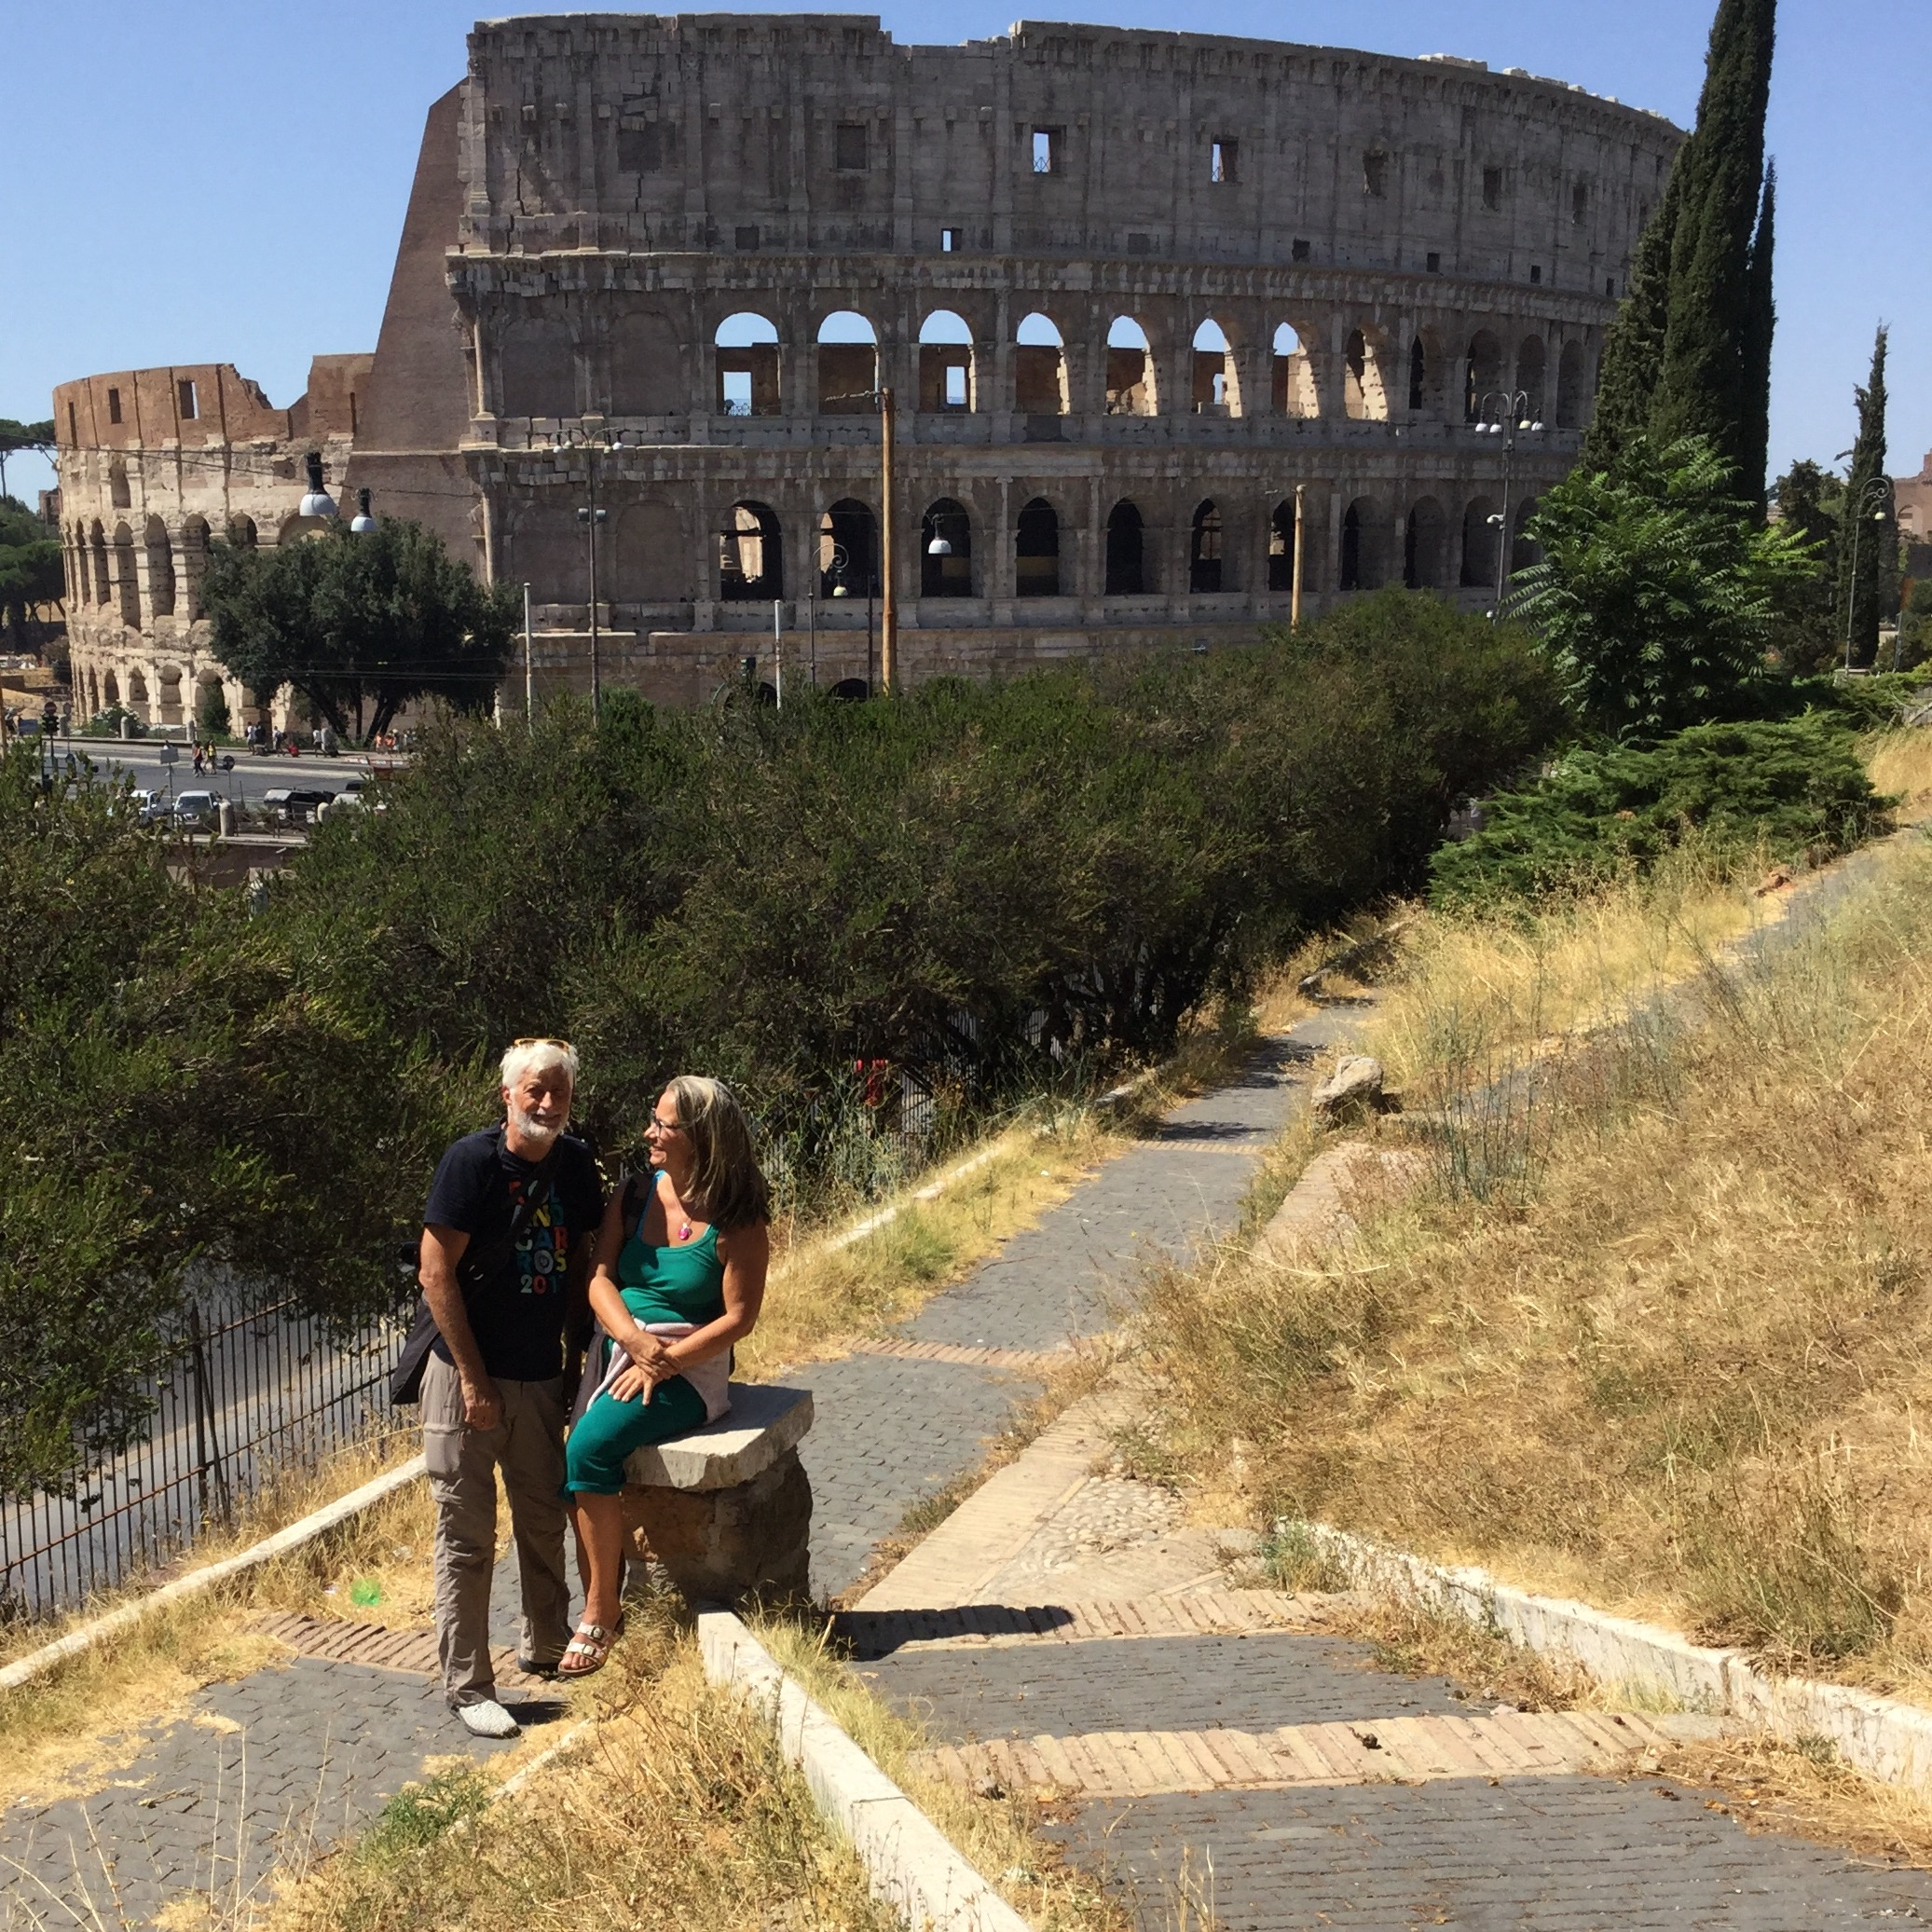 At the Colosseum. Lili took the bottom image!